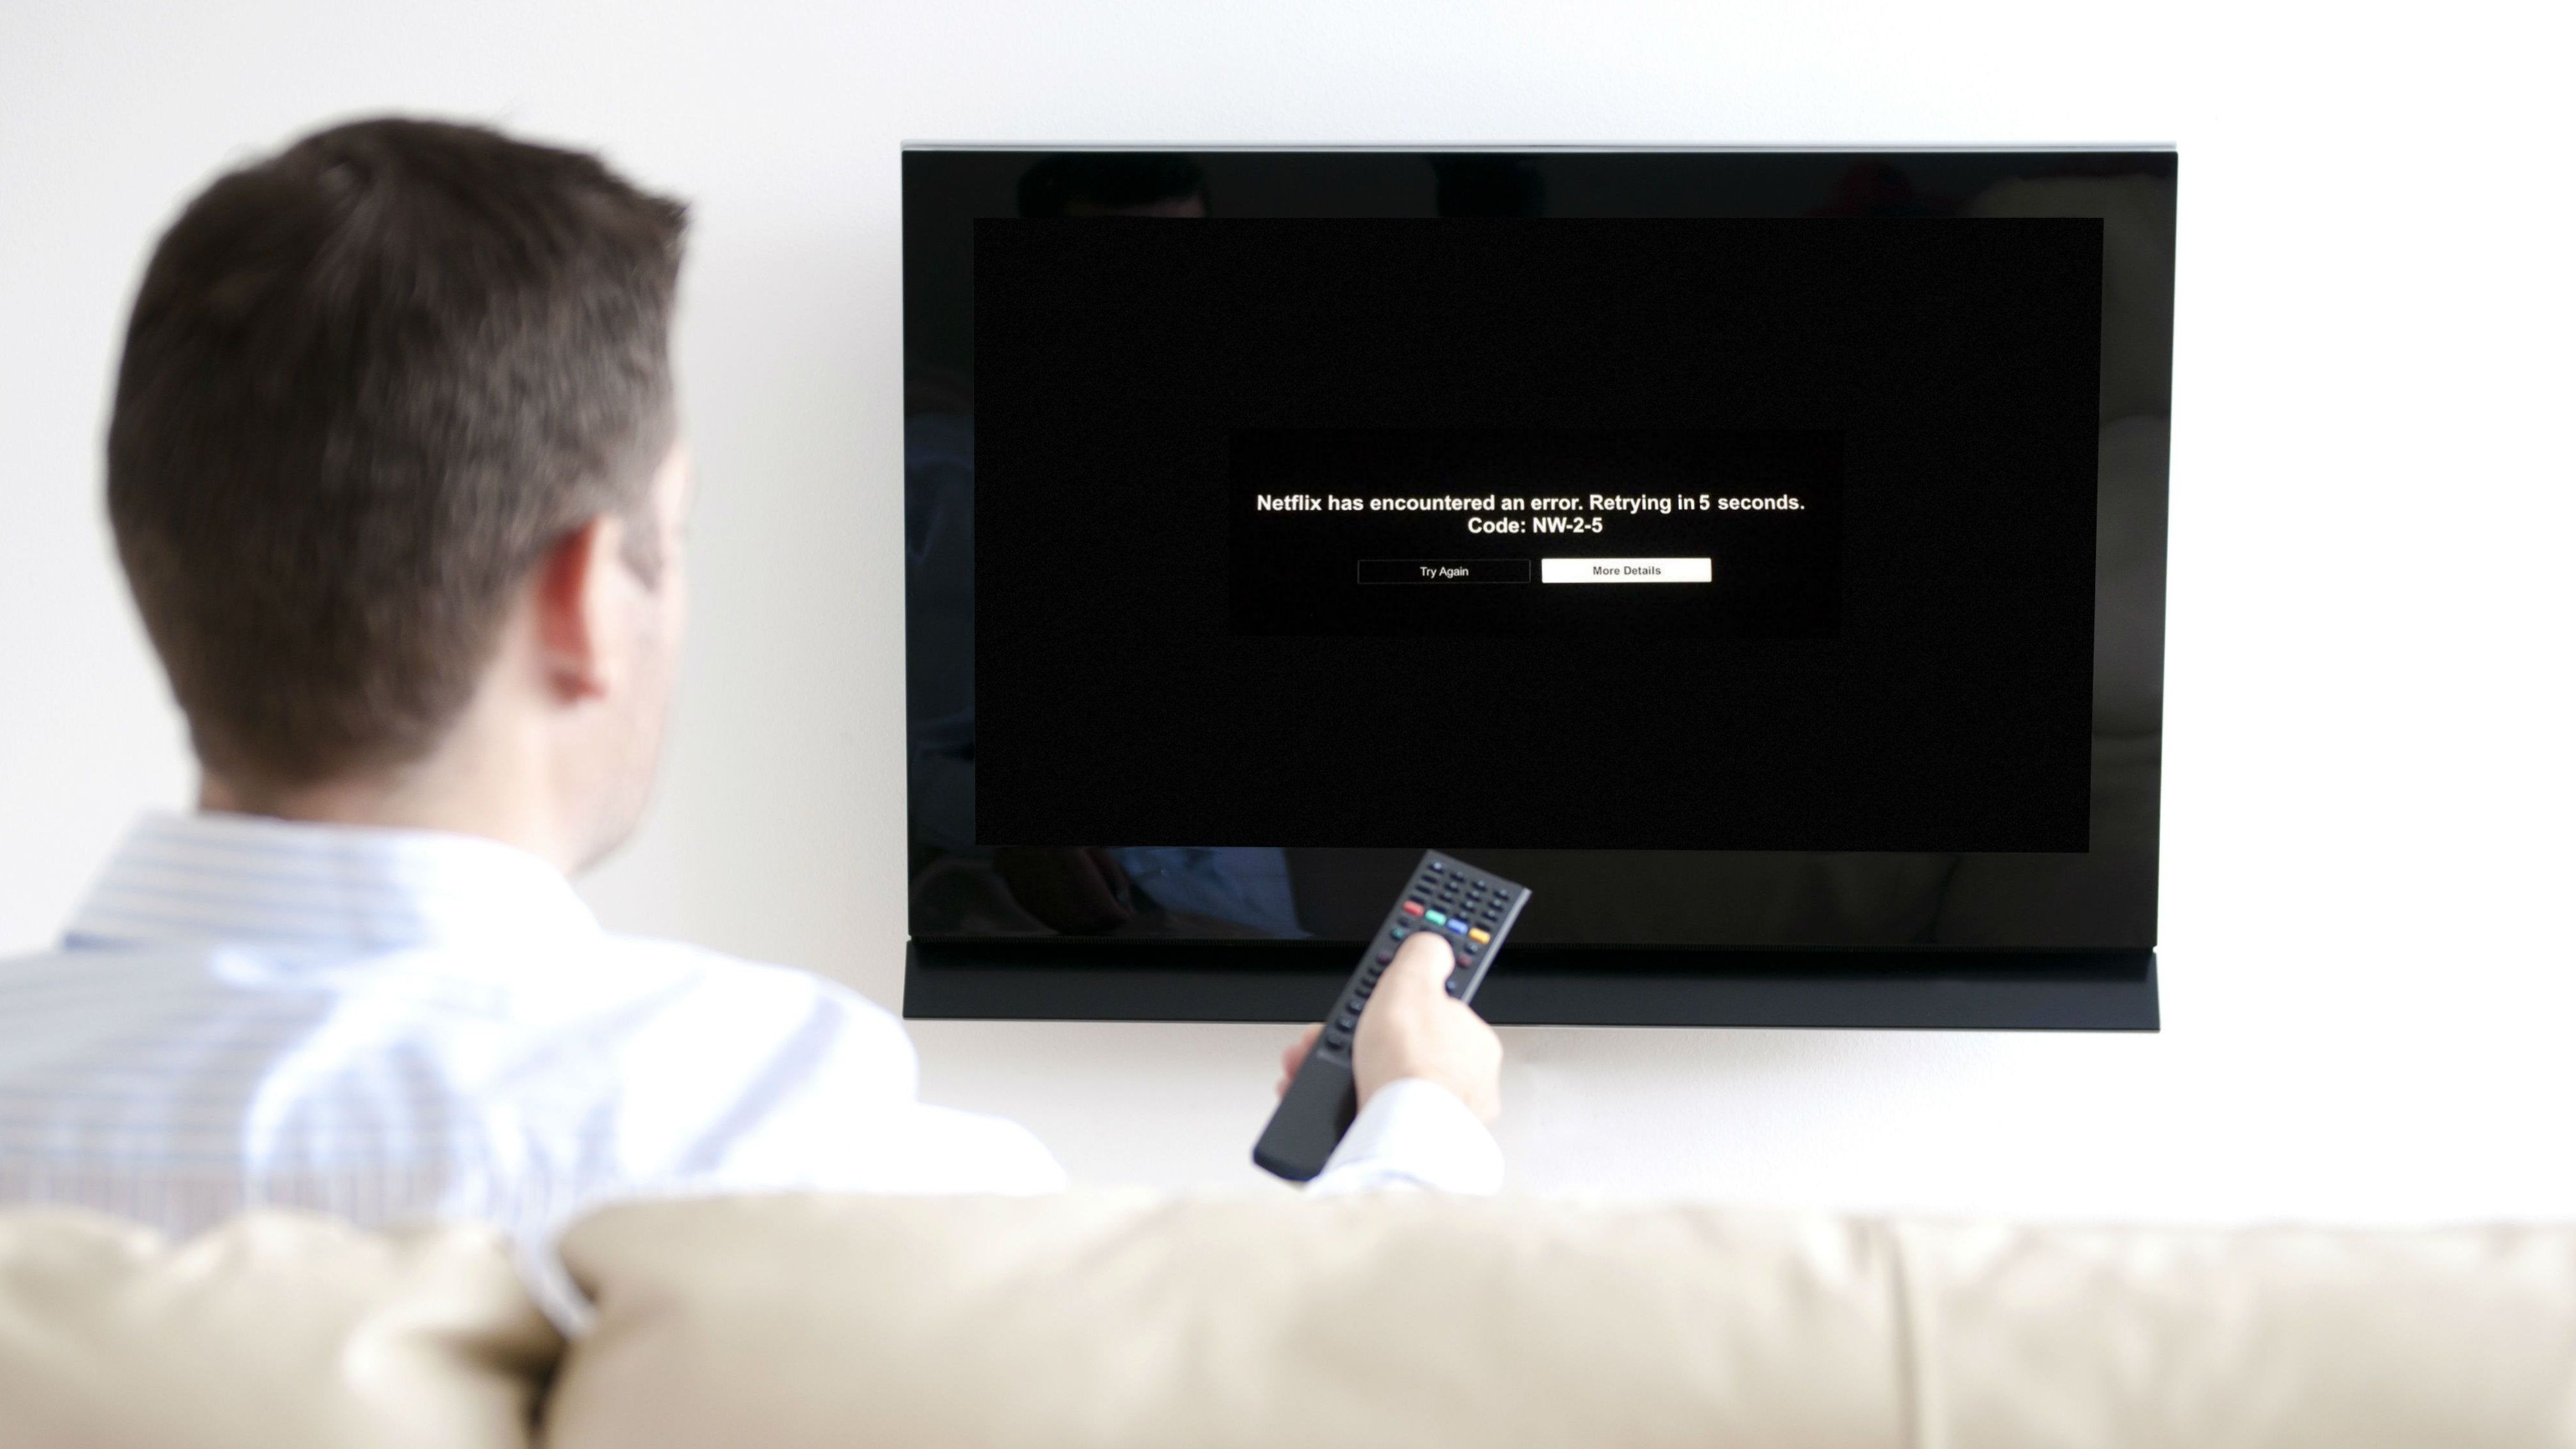 How to Fix Netflix Error Code NW-2-5